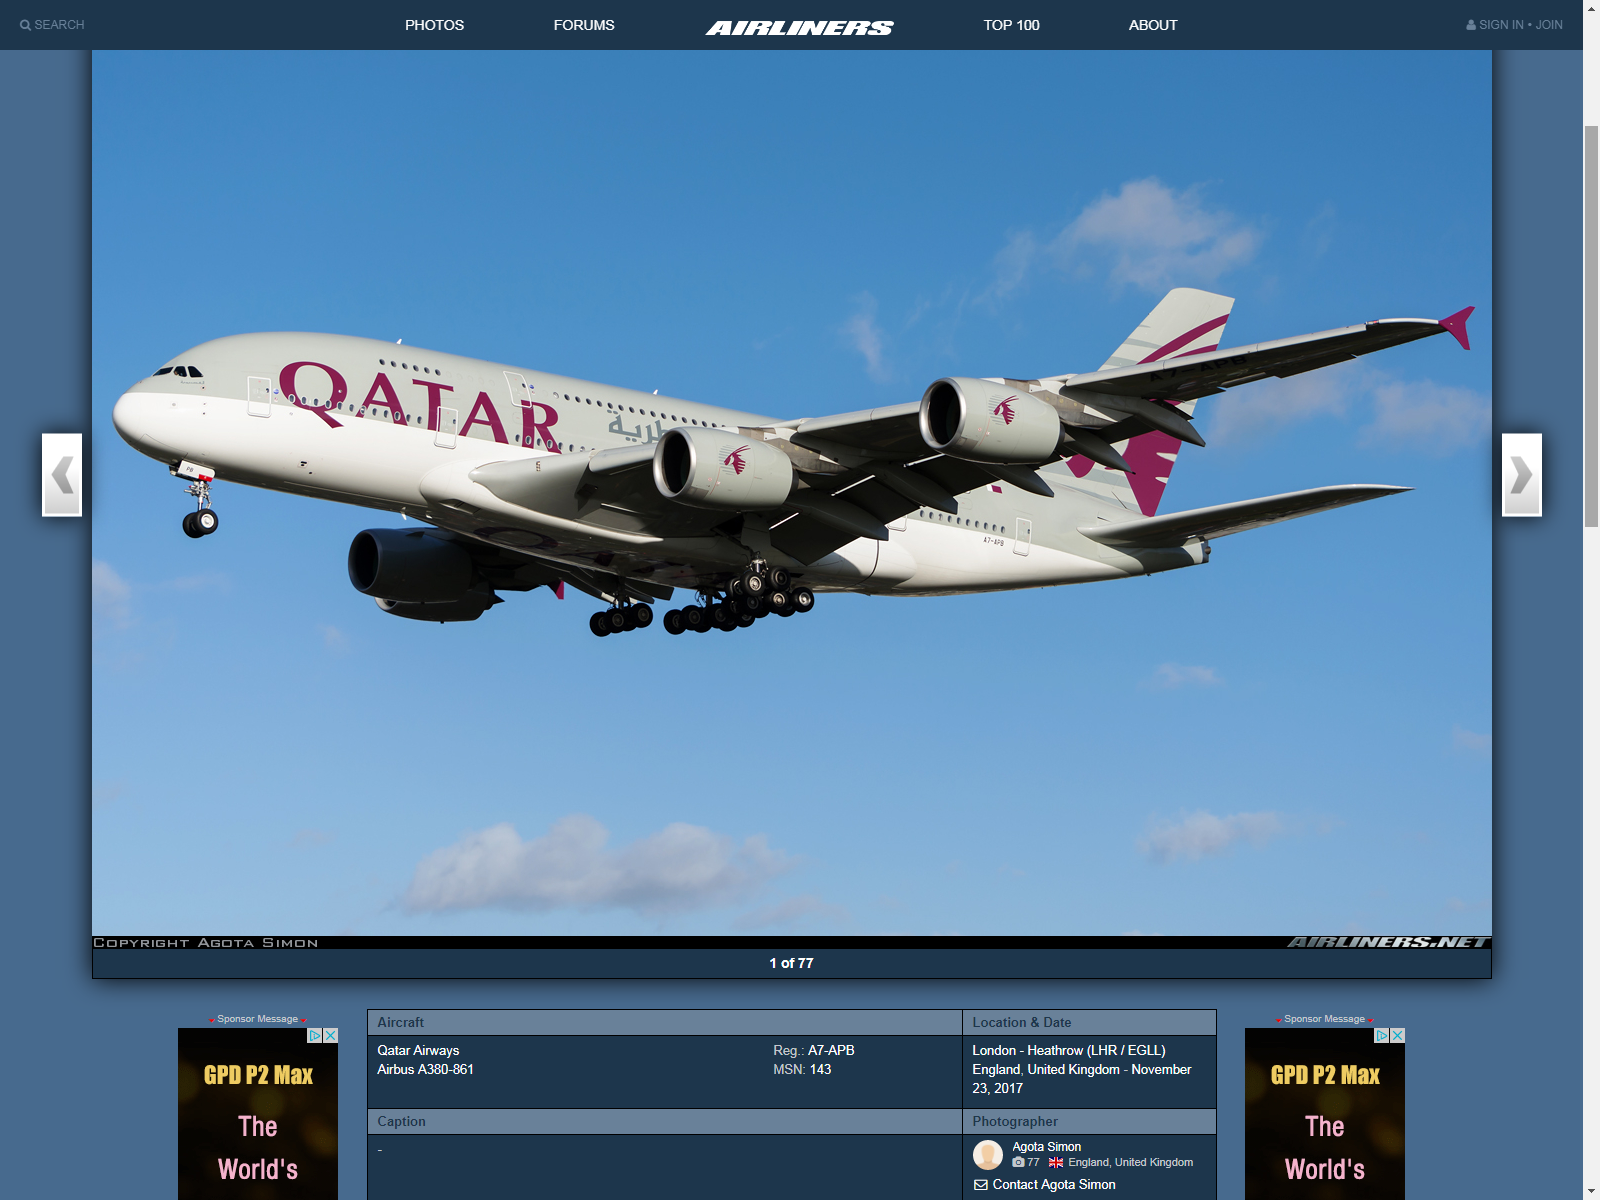 My first ever accepted photo on Airlinersnet.